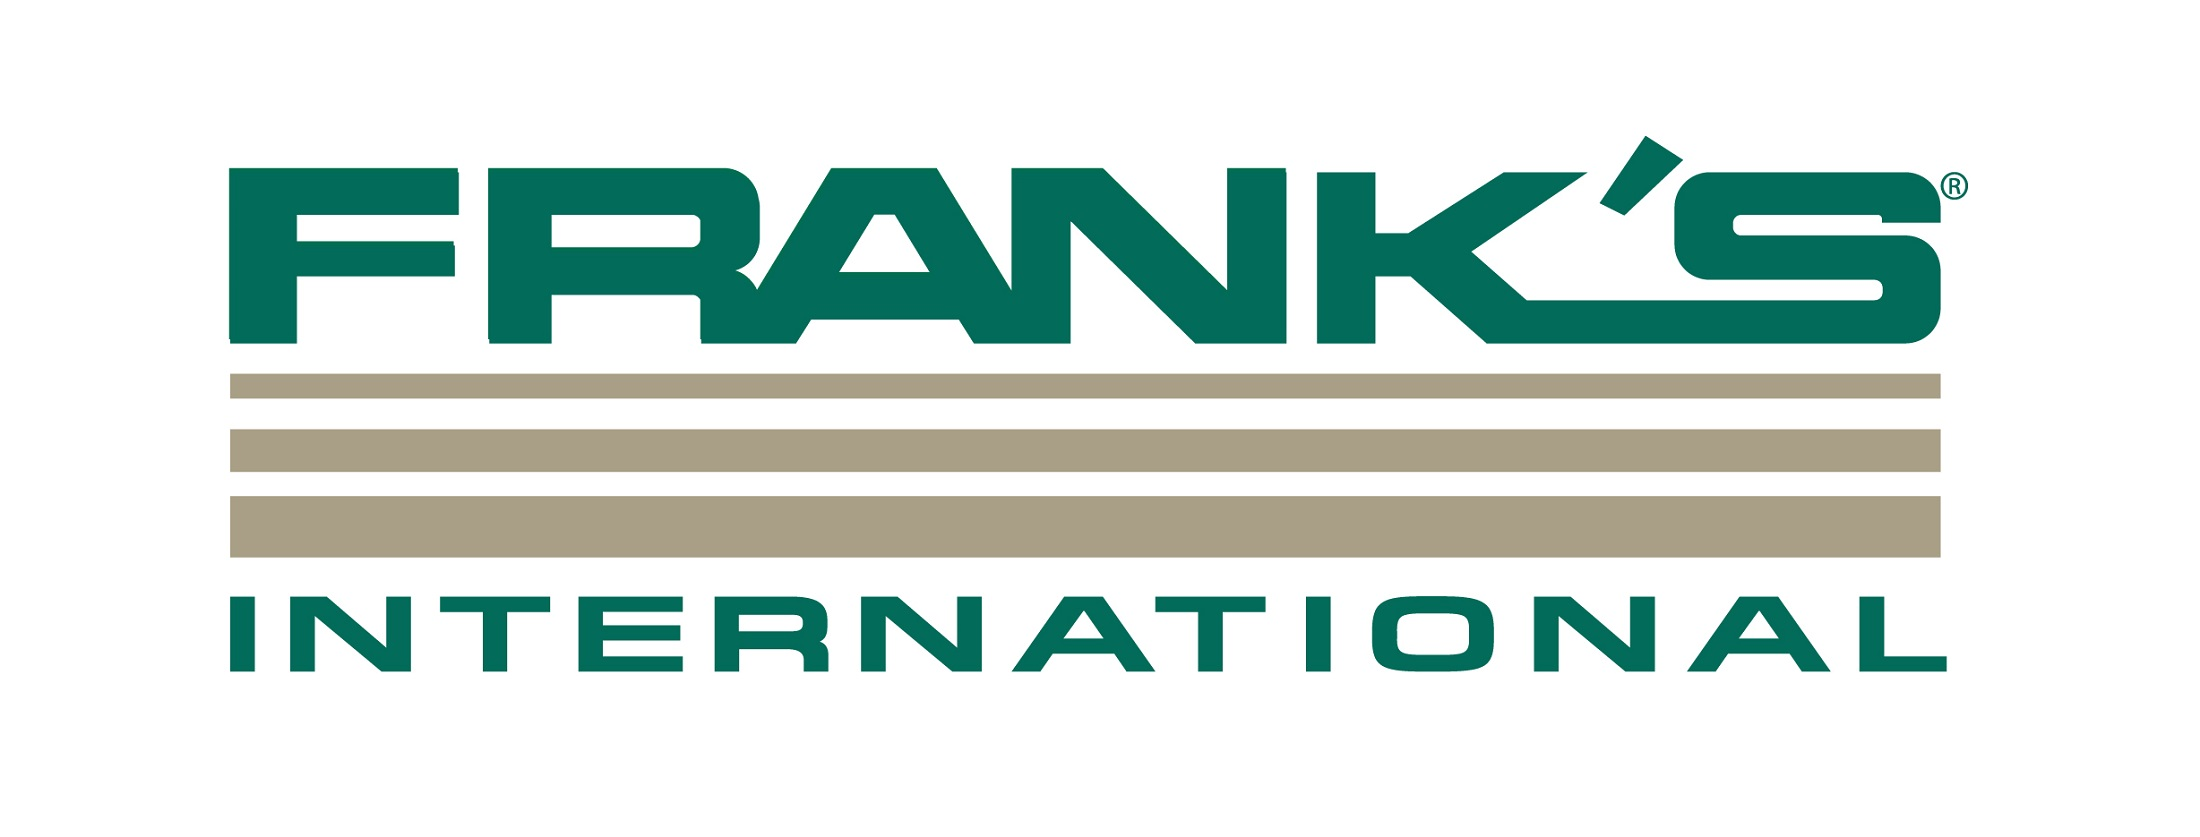 Frank's International N.V. Announces First Quarter 2019 Results